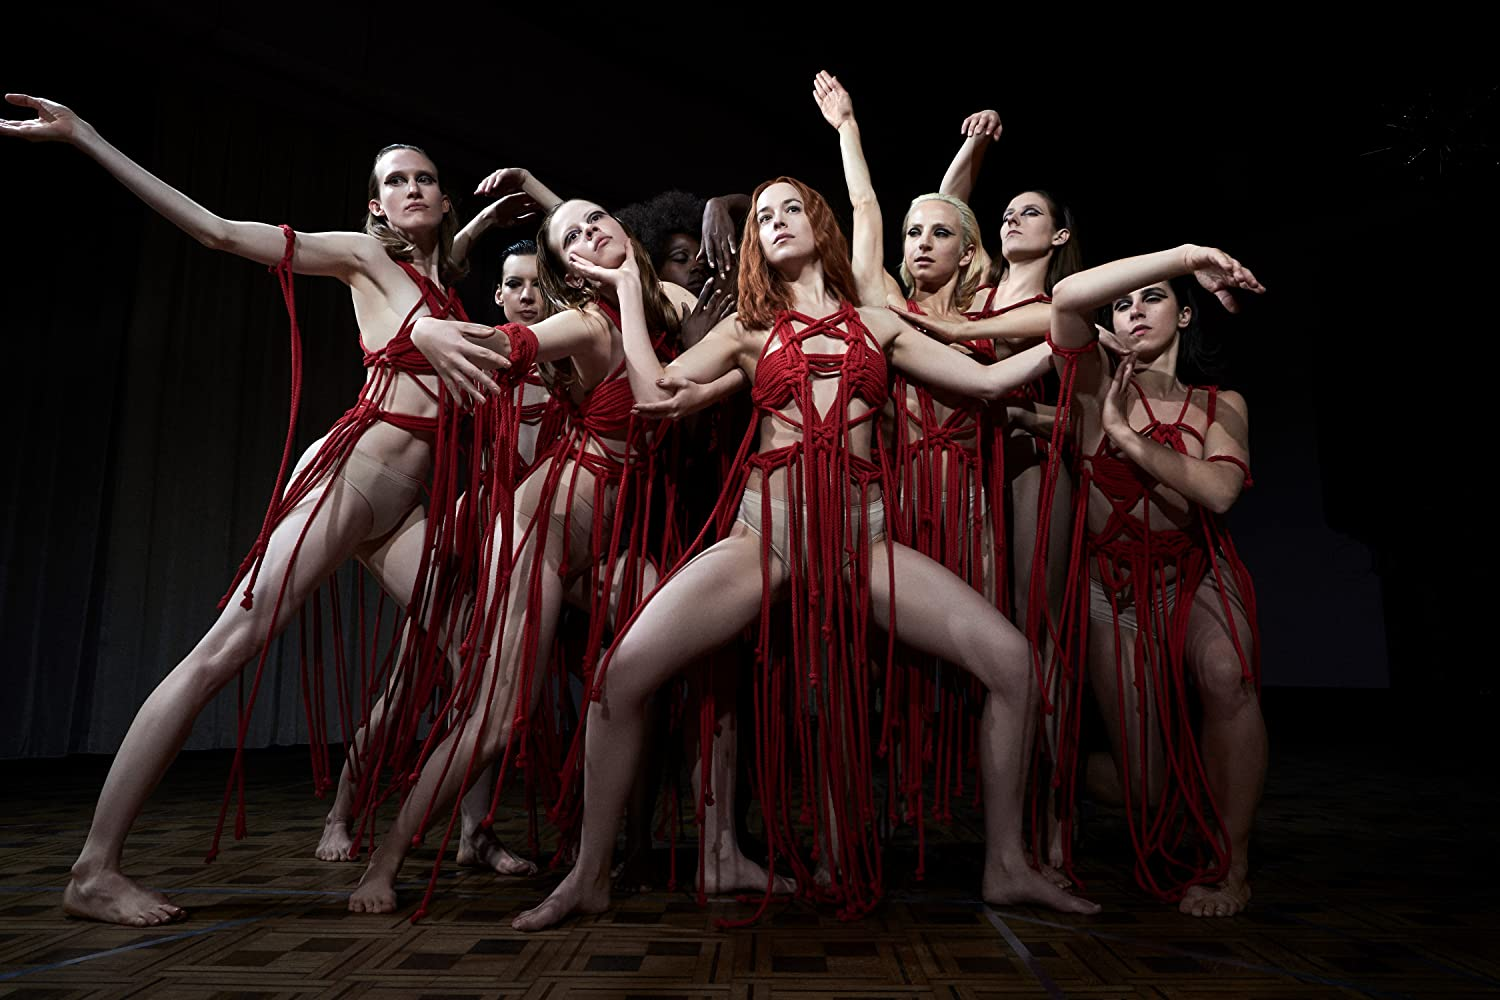 Dakota Johnson, Gala Moody, Sara Sguotti, Anne-Lise Brevers, Halla Thordardottir, Mia Goth, and Olivia Ancona in Suspiria (2018)